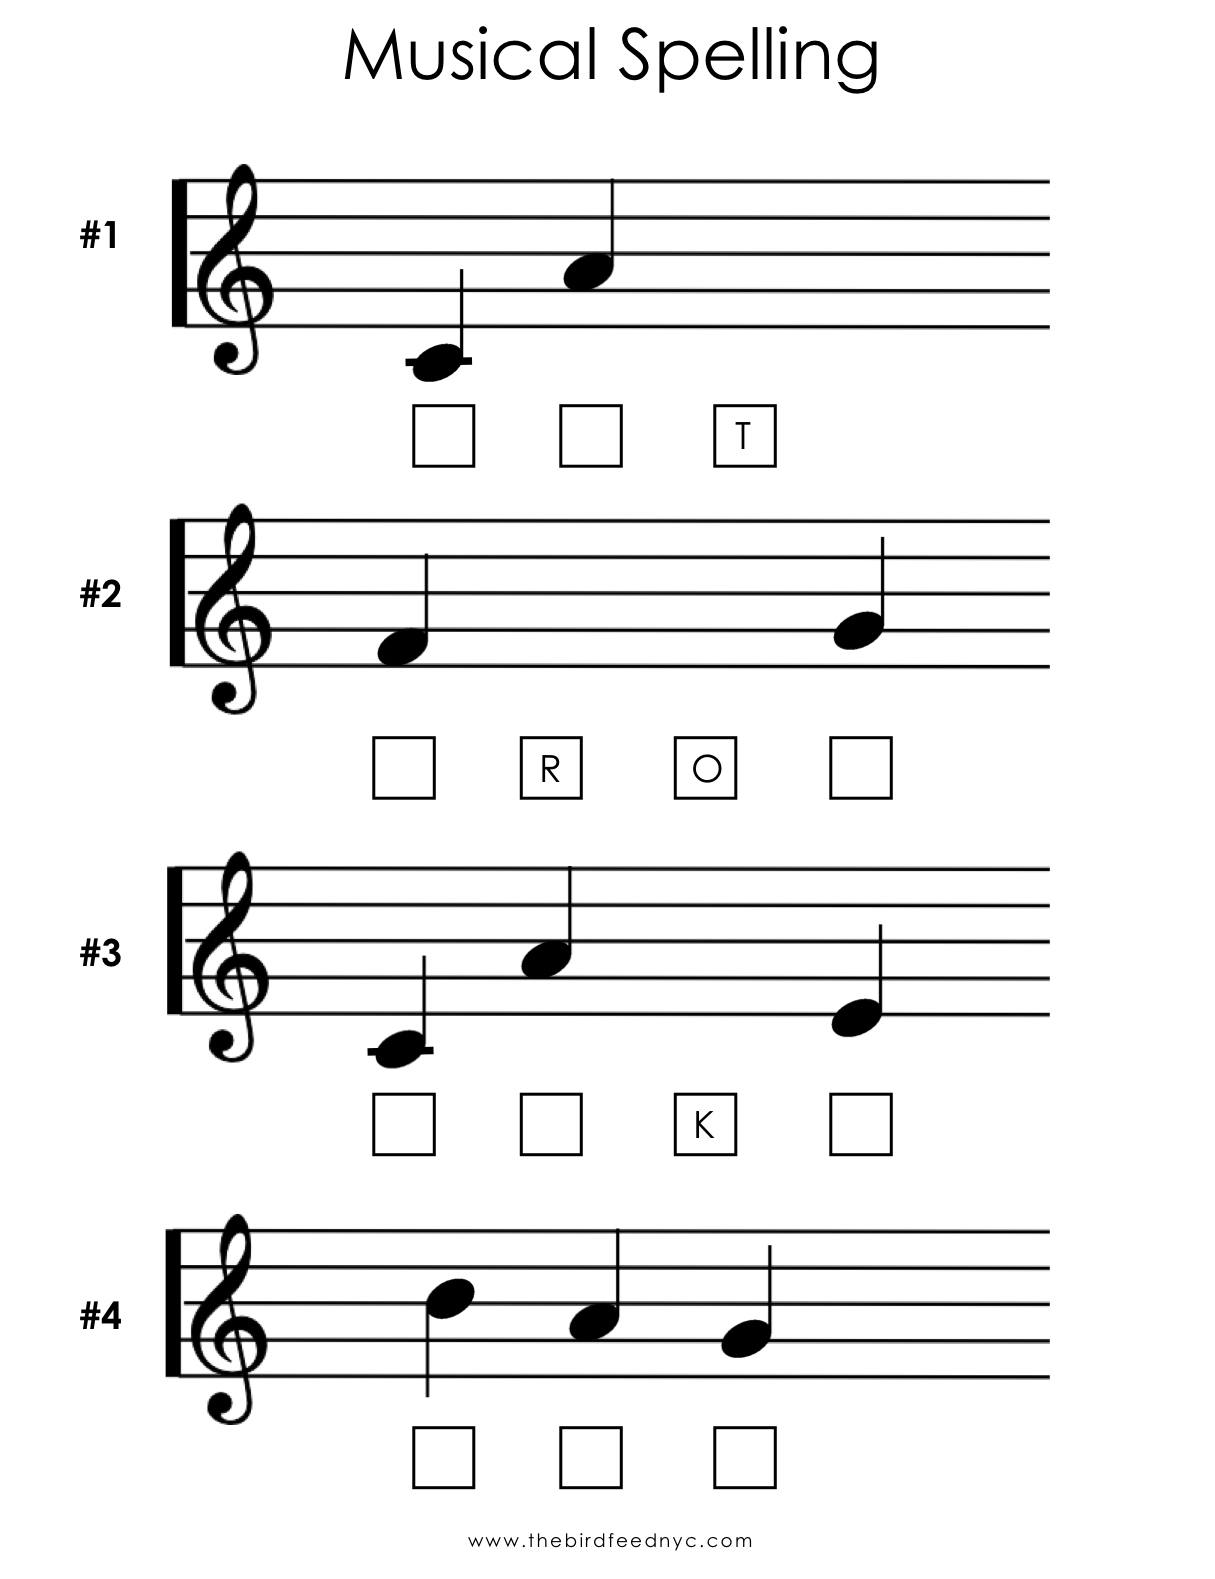 Musical Spelling Activity Sheet The Bird Feed Nyc